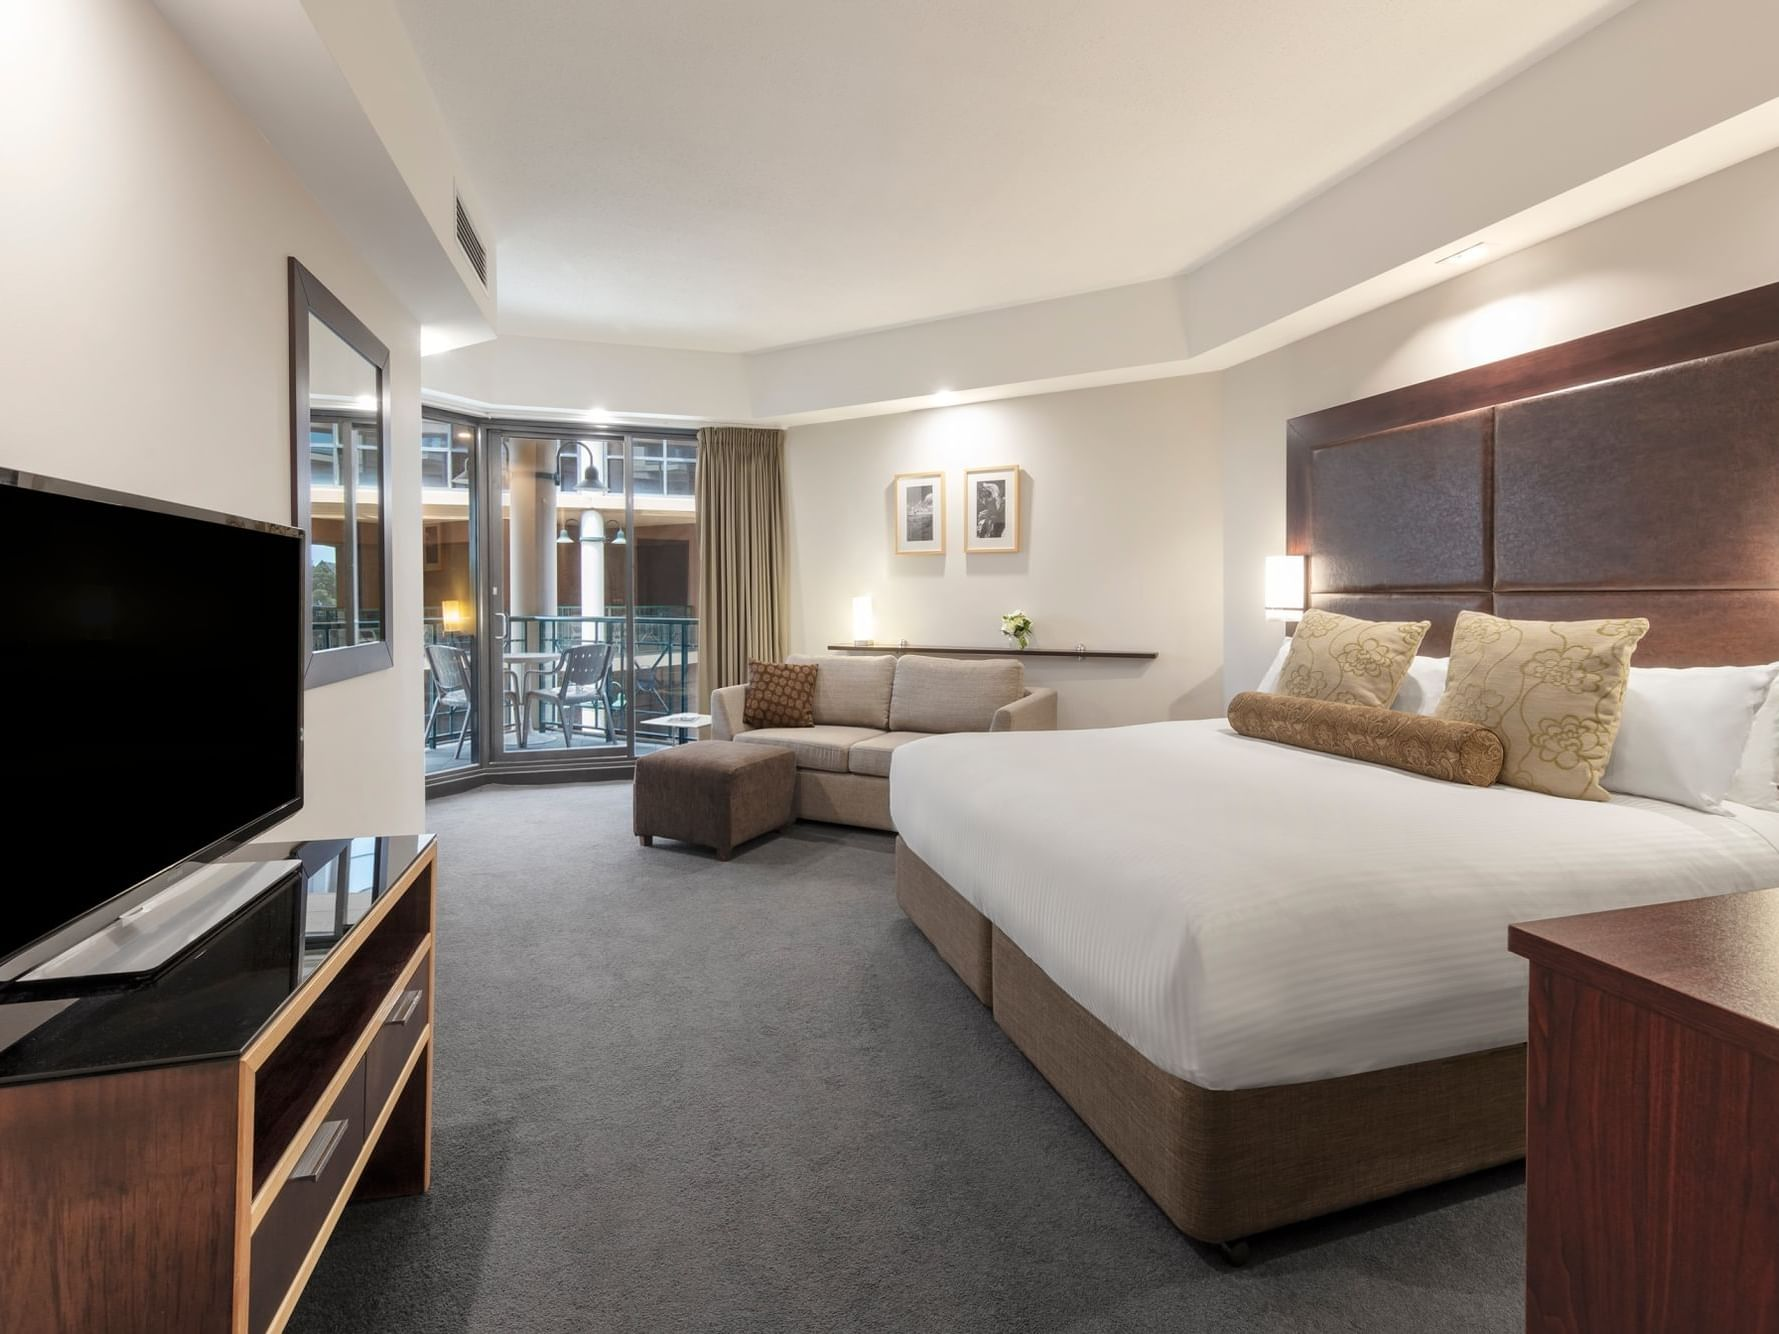 Deluxe Courtyard King room at Amora Hotel